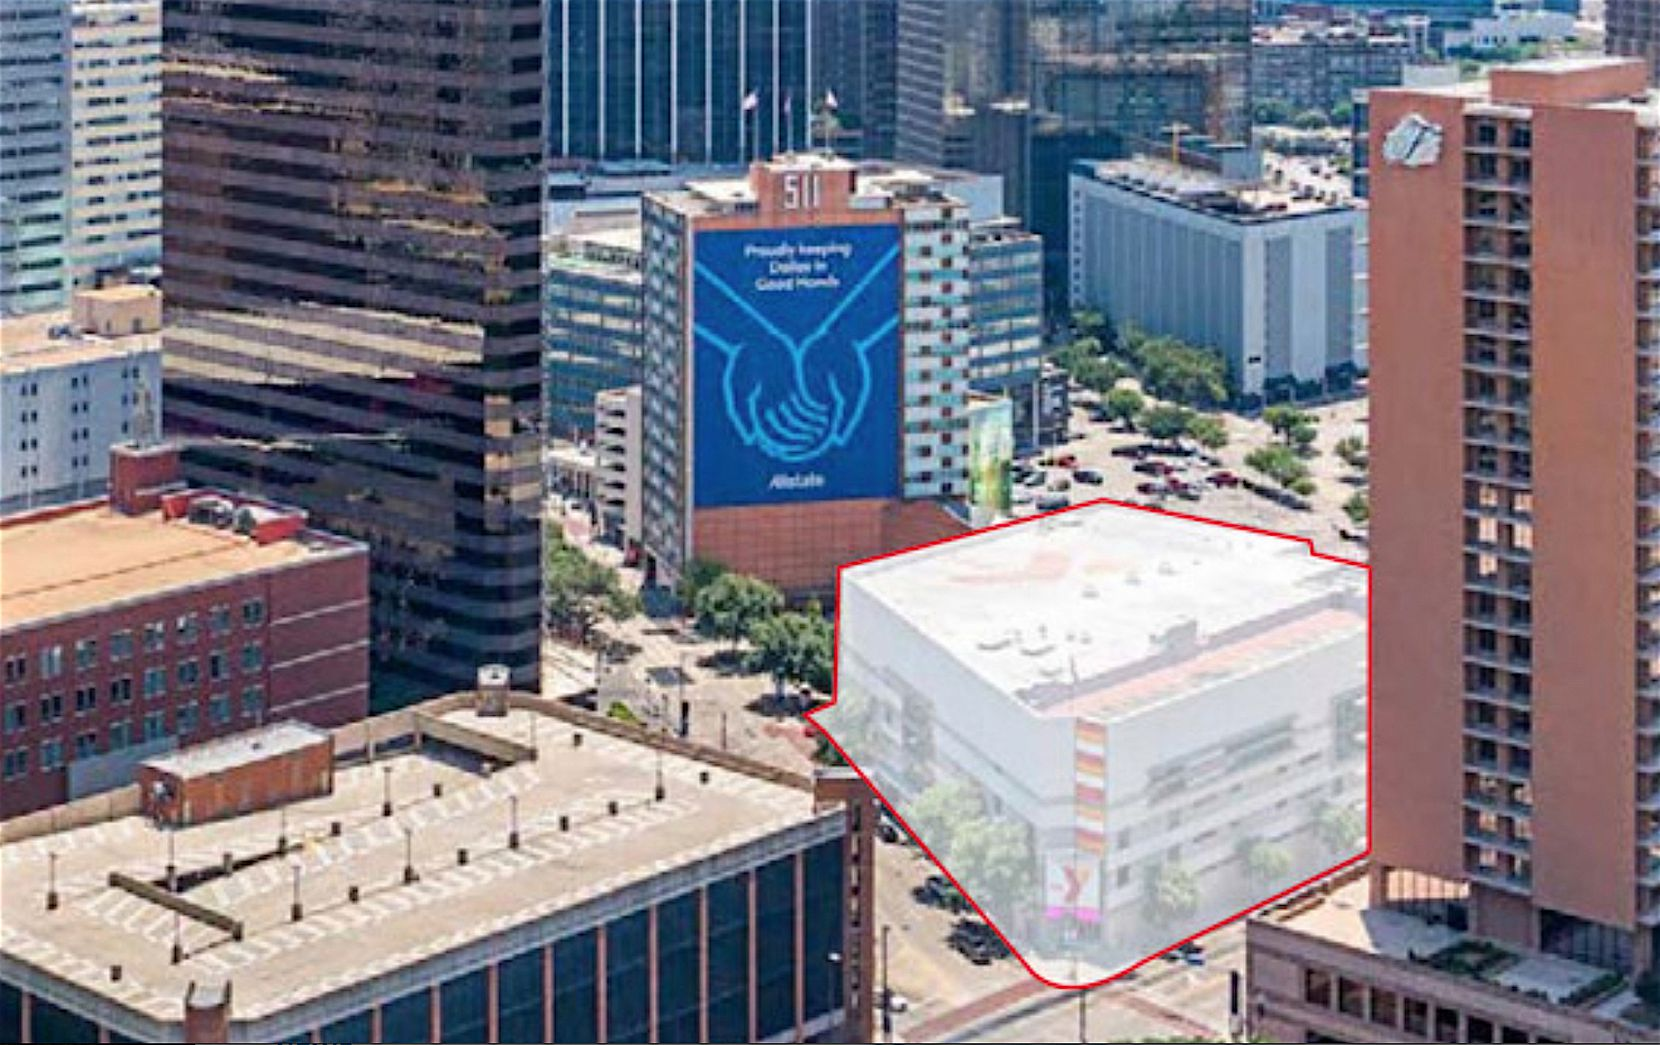 Commercial property firm JLL is hunting a buyer for the downtown Dallas YMCA which is across the street from the Fairmont Hotel.